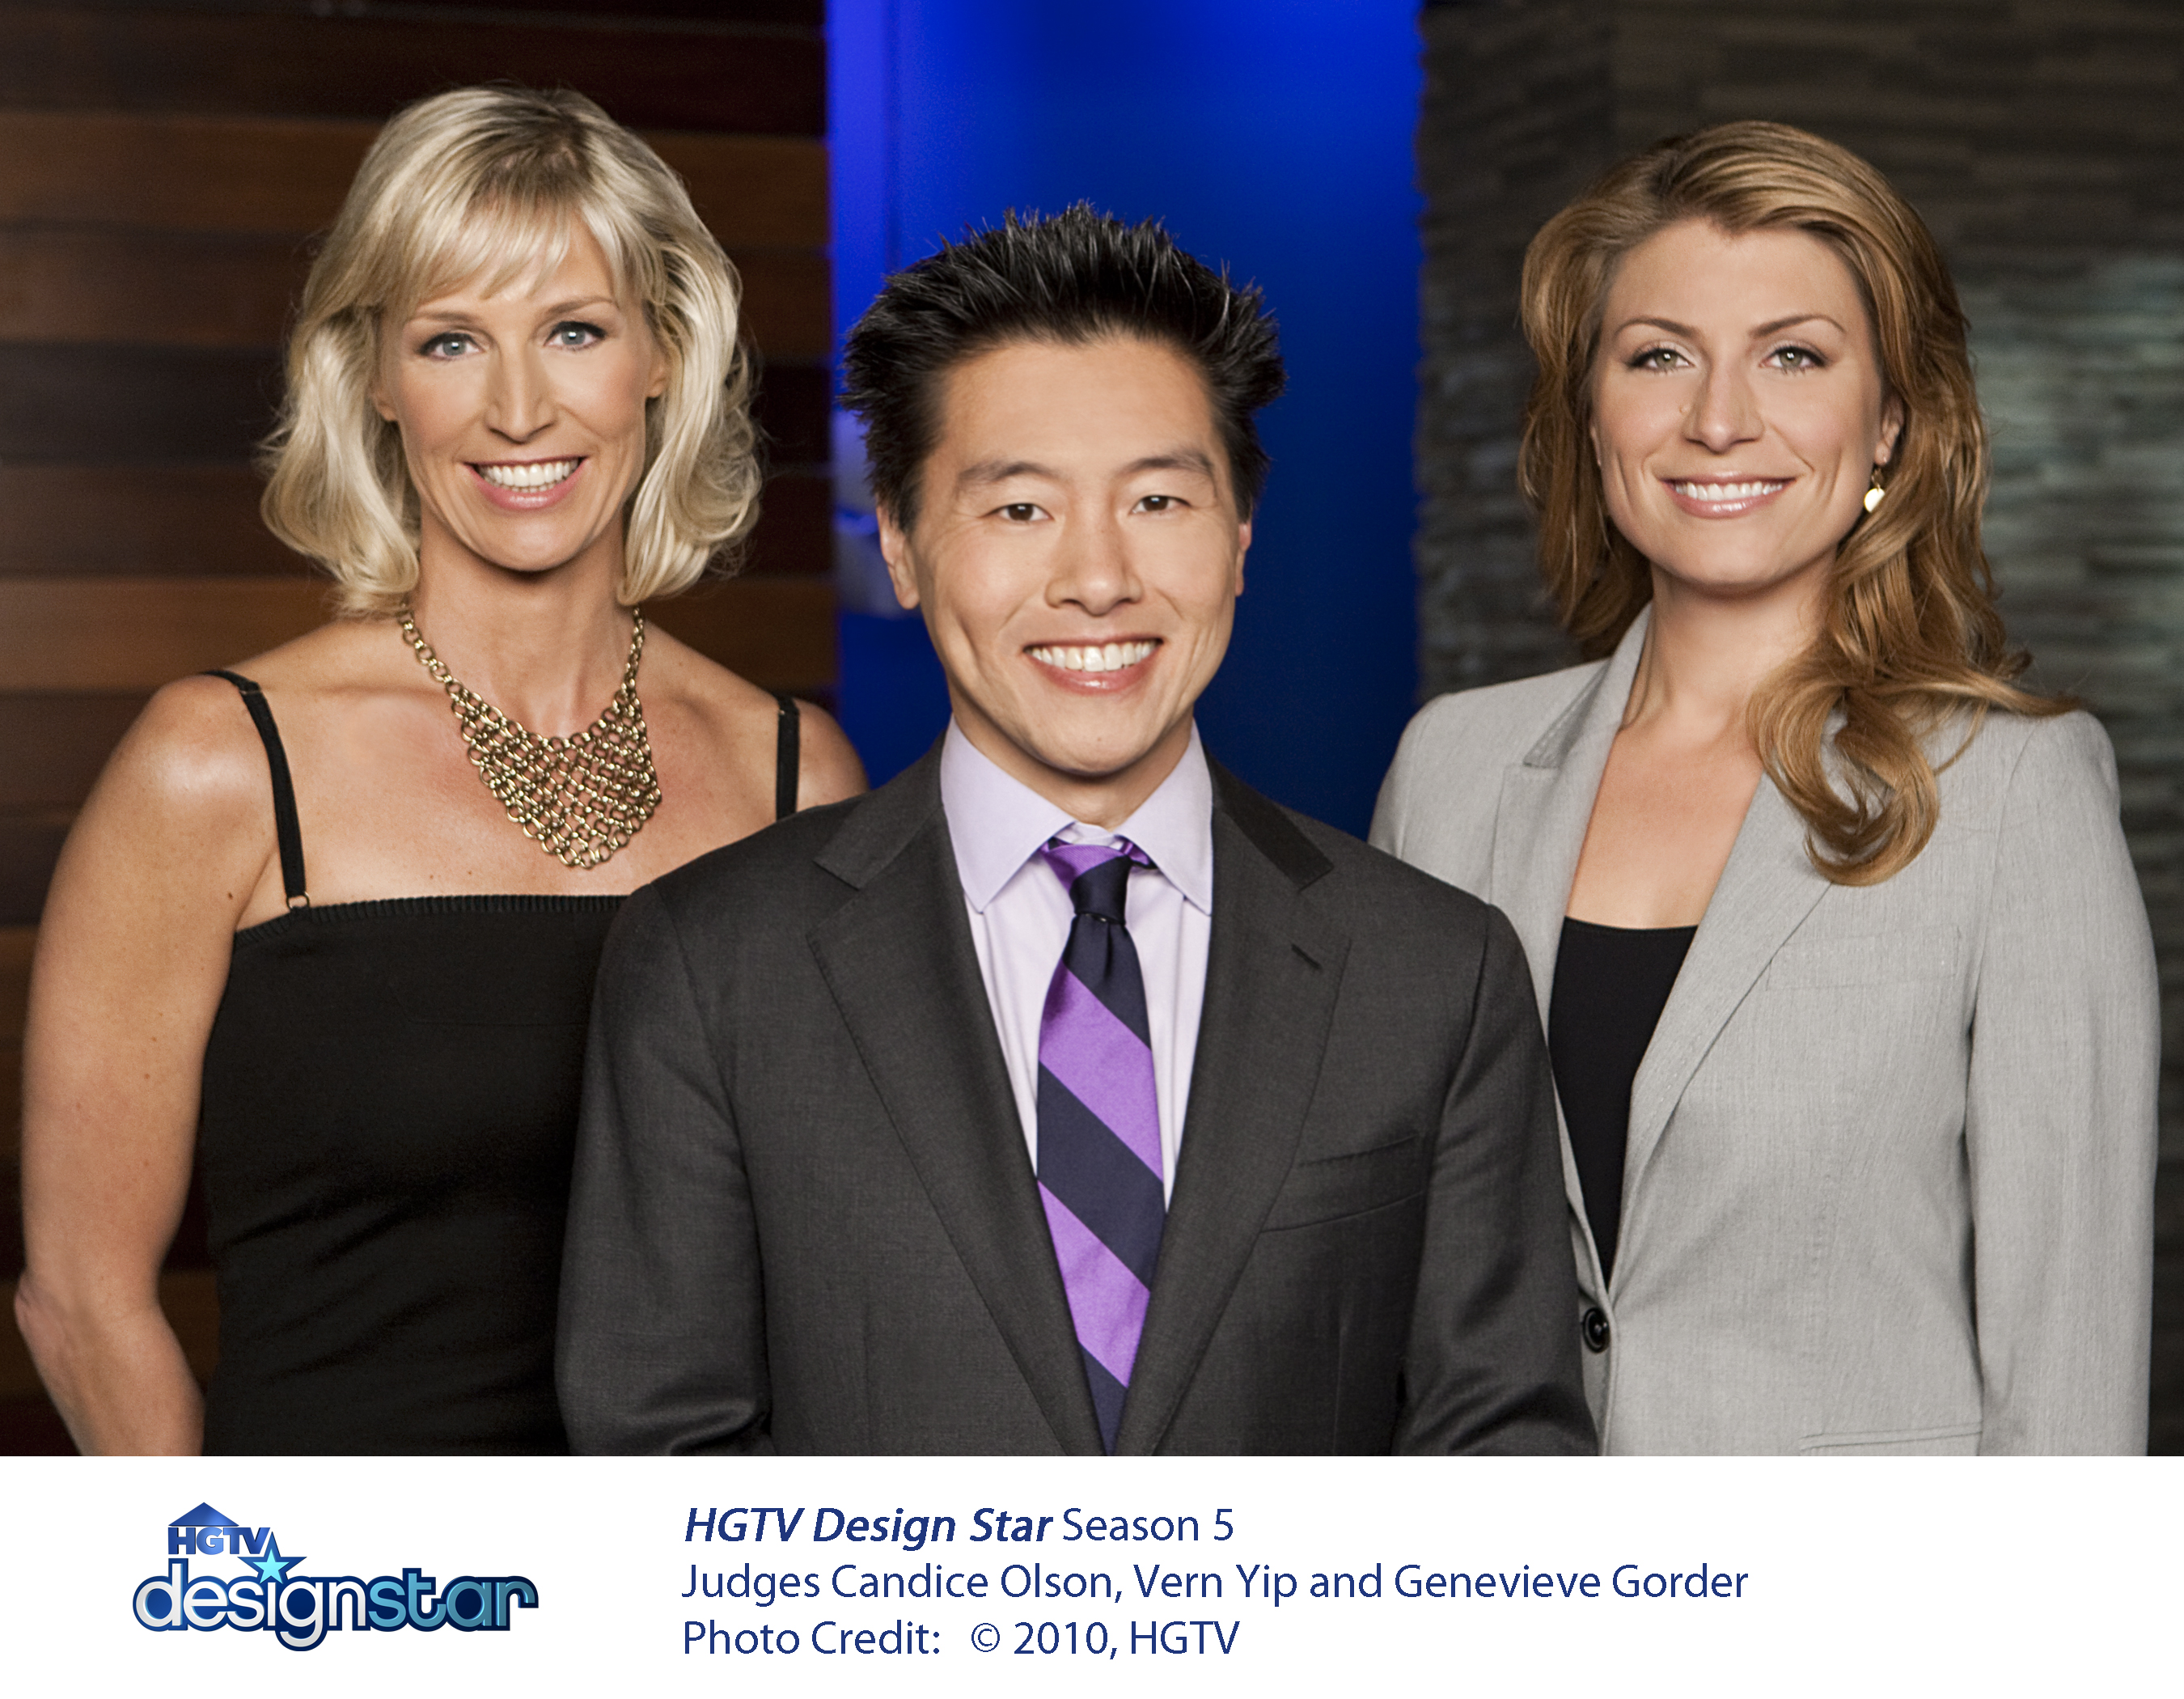 FIFTH SEASON OF 'HGTV DESIGN STAR' PUTS CONTENDERS CENTER STAGE IN